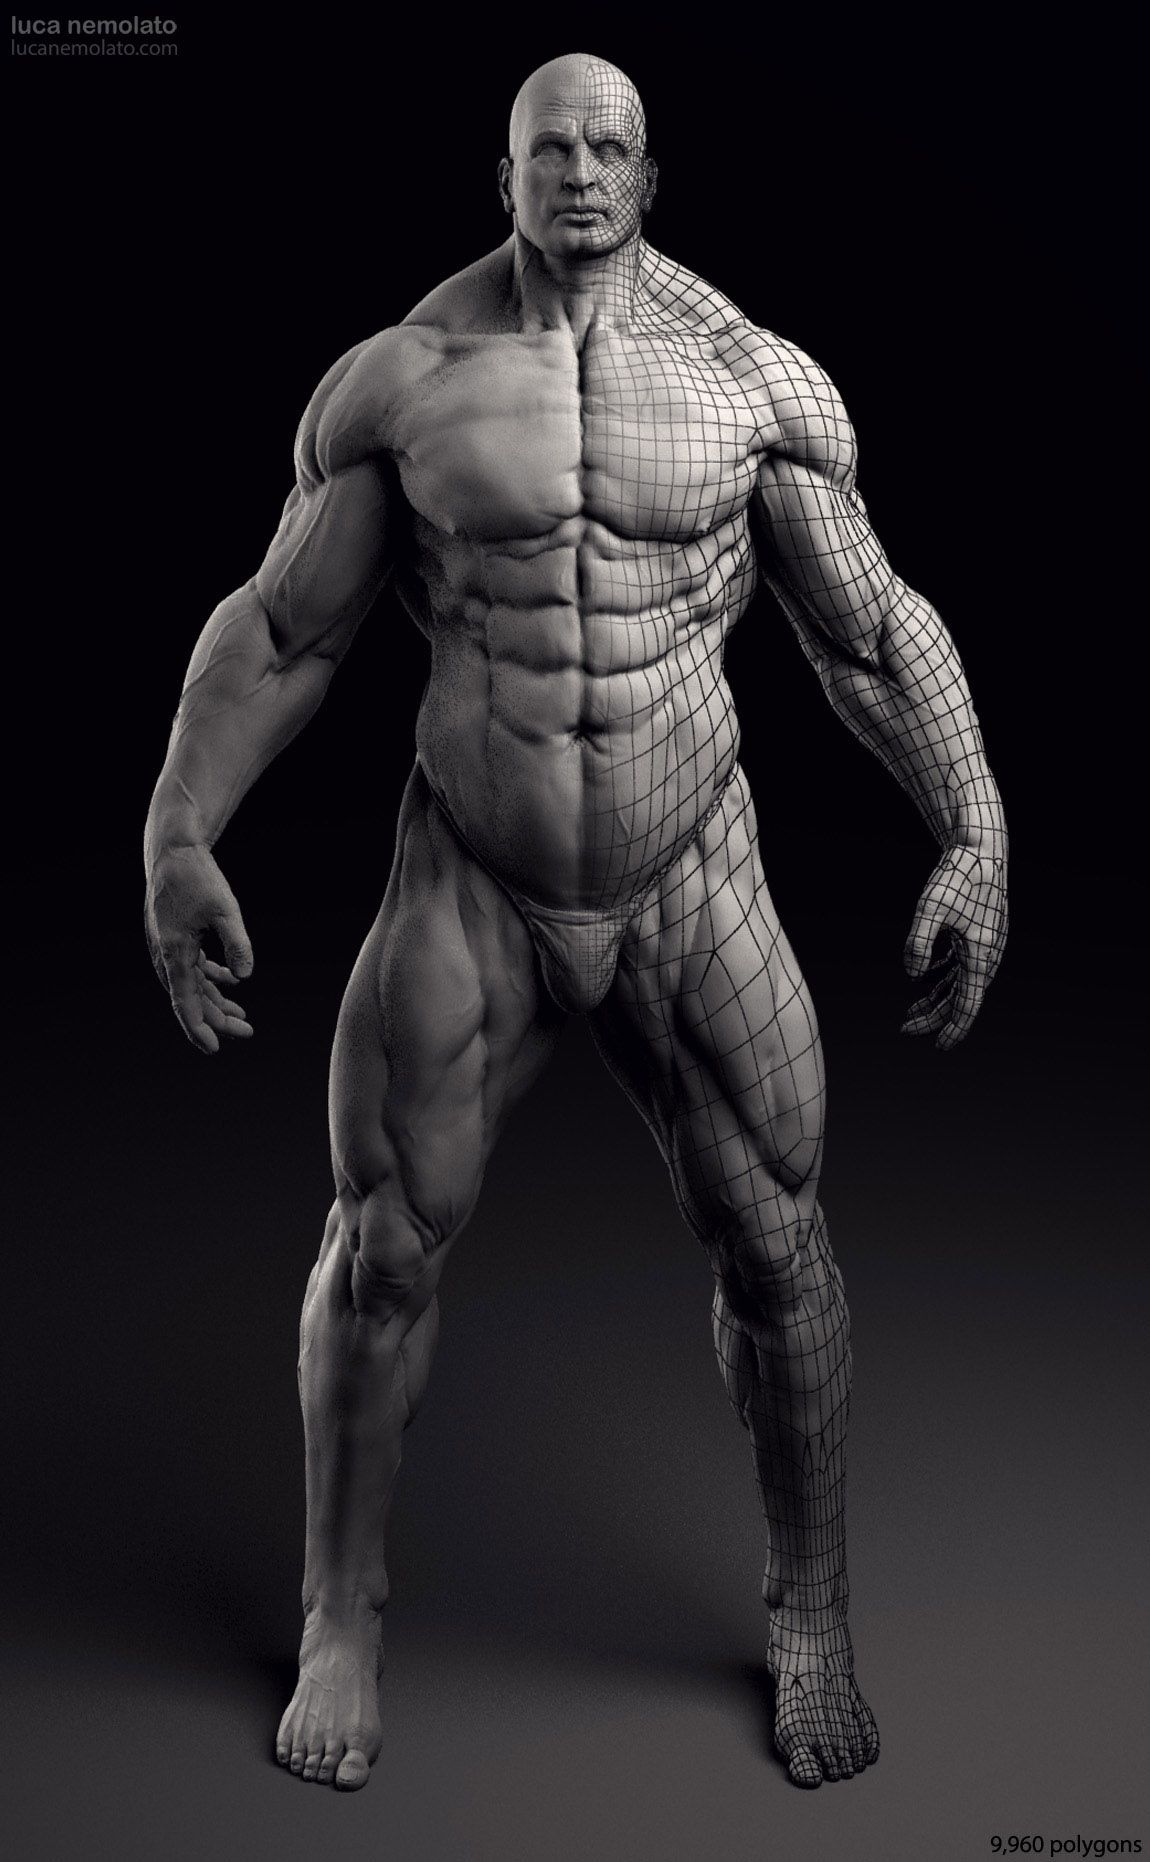 Extreme-Bodybuilder-3D-Model-3-personal-project.jpg (1150×1862 ...